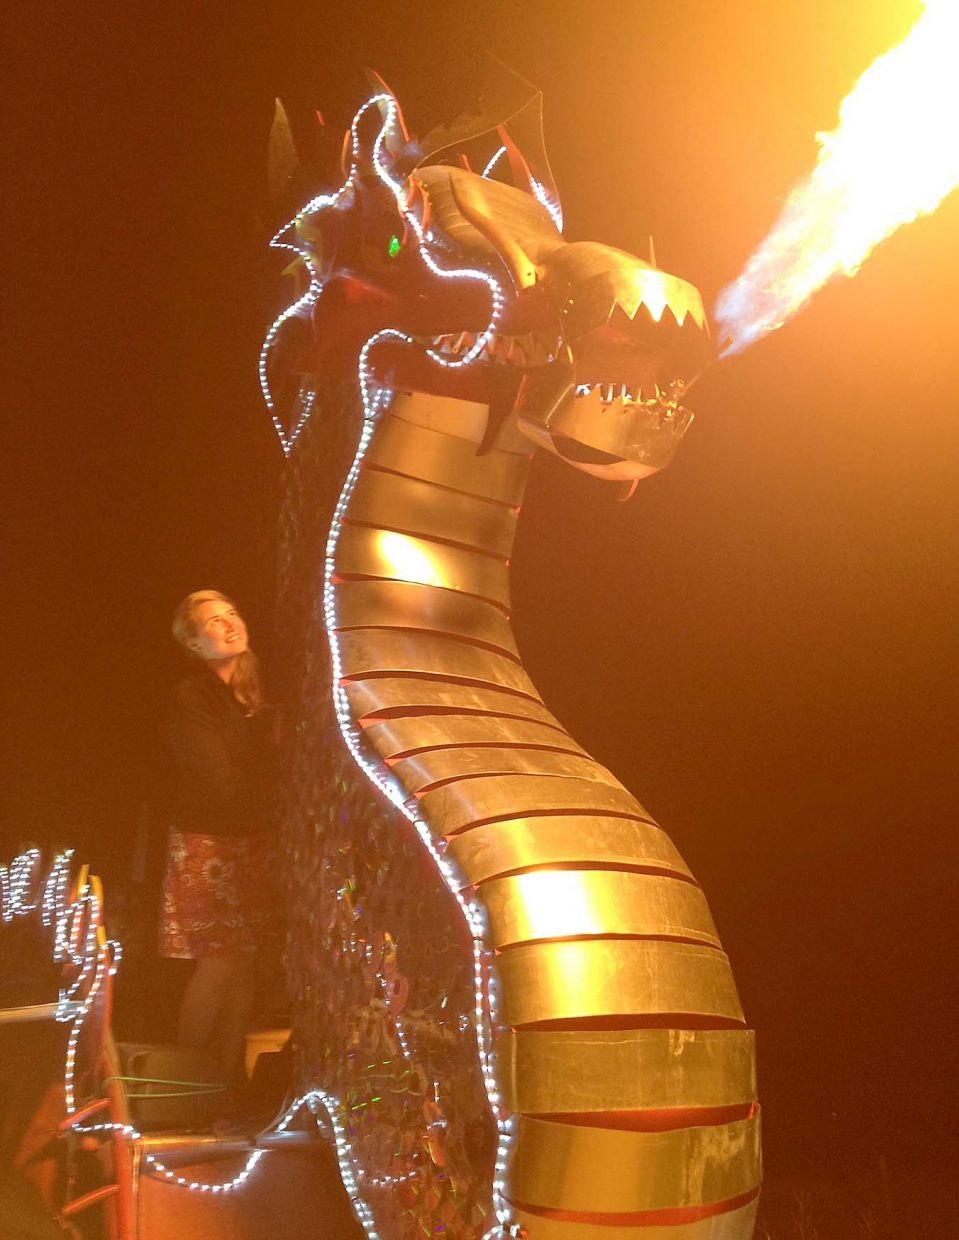 Phoenix, the newest fire-breathing dragon created by Steamboat Springs residents Gail and Charlie Holthausen, will be breathing fire at the Downtown Halloween Stroll, which takes place on Lincoln Avenue from 5 to 7 p.m. Friday.